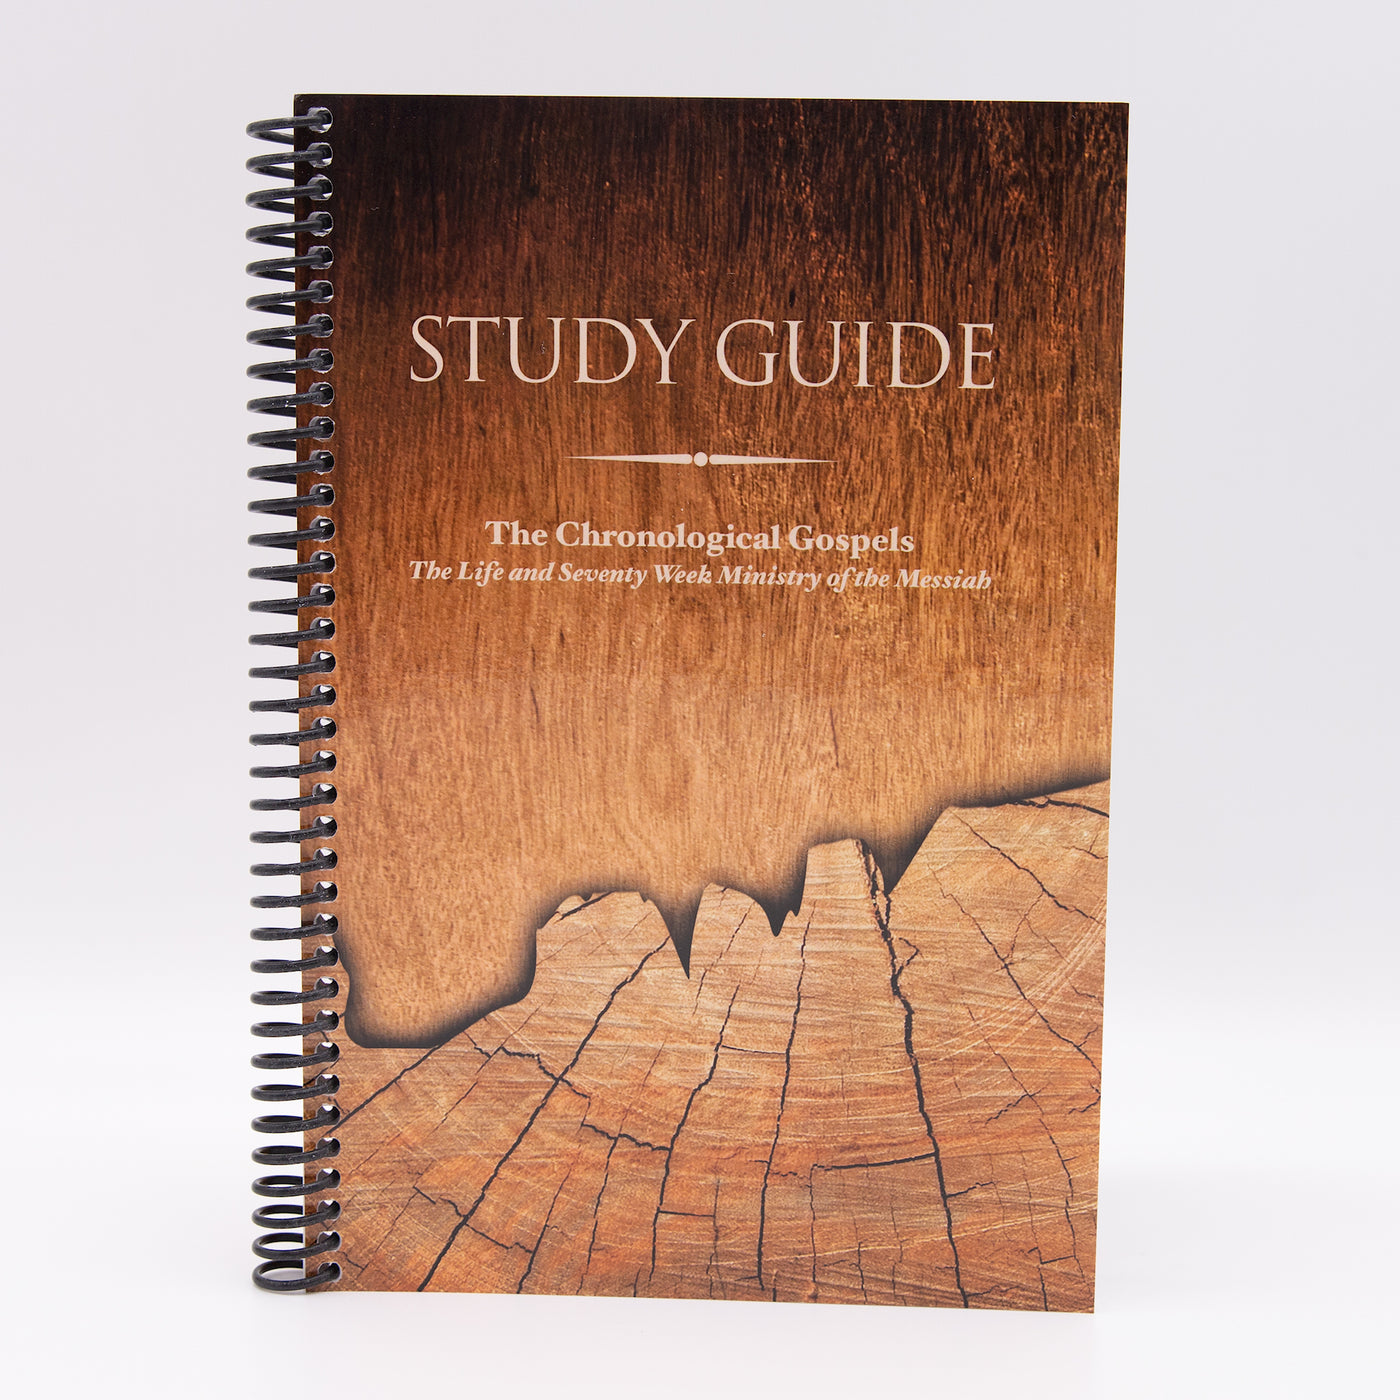 The Chronological Gospels Study Guide